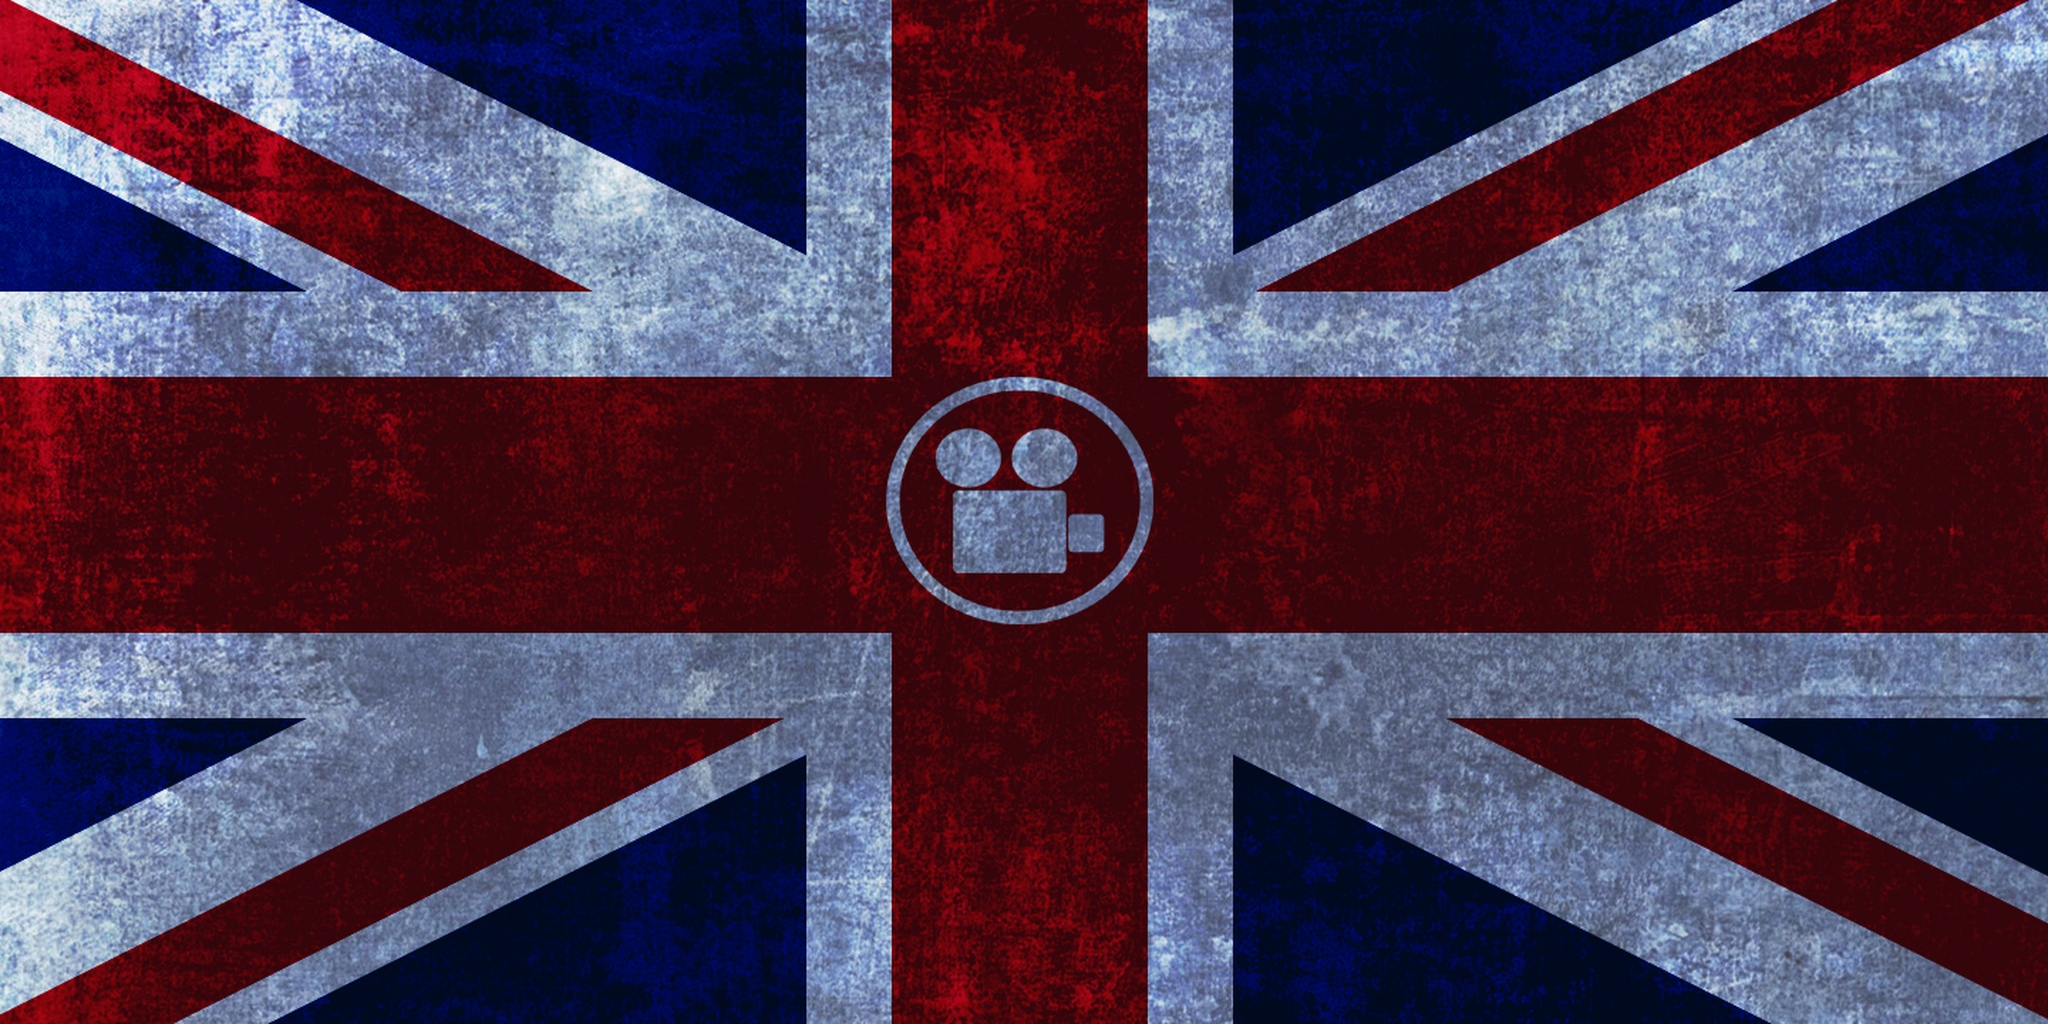 uk flag with camera icon in the center